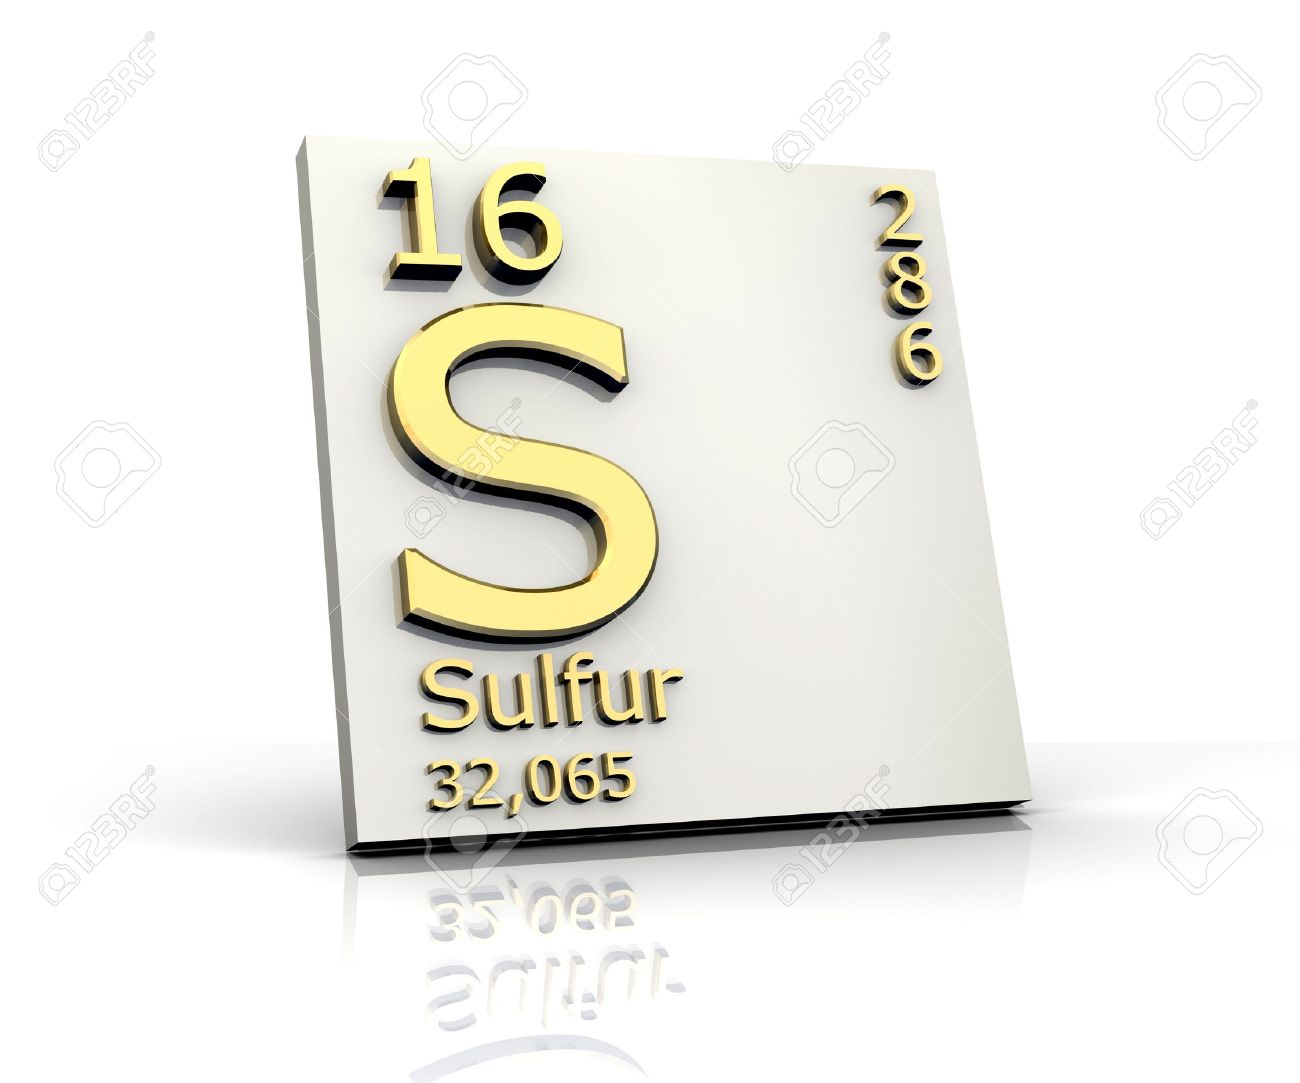 Sulfur form periodic table of elements stock photo picture and sulfur form periodic table of elements stock photo 4315556 gamestrikefo Gallery